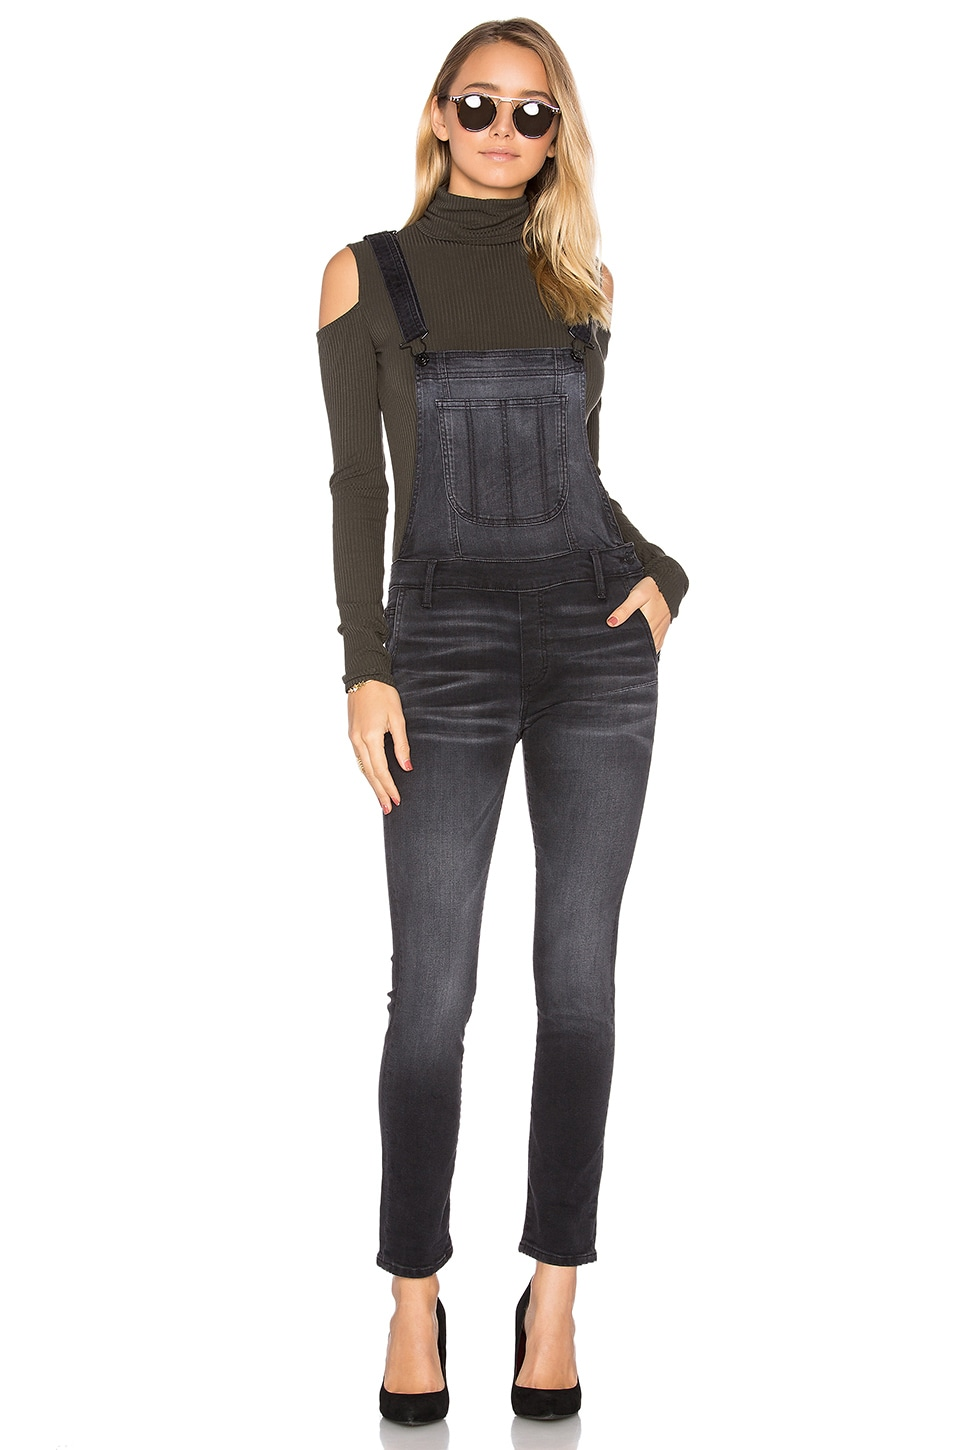 The Skinny Overall by Black Orchid